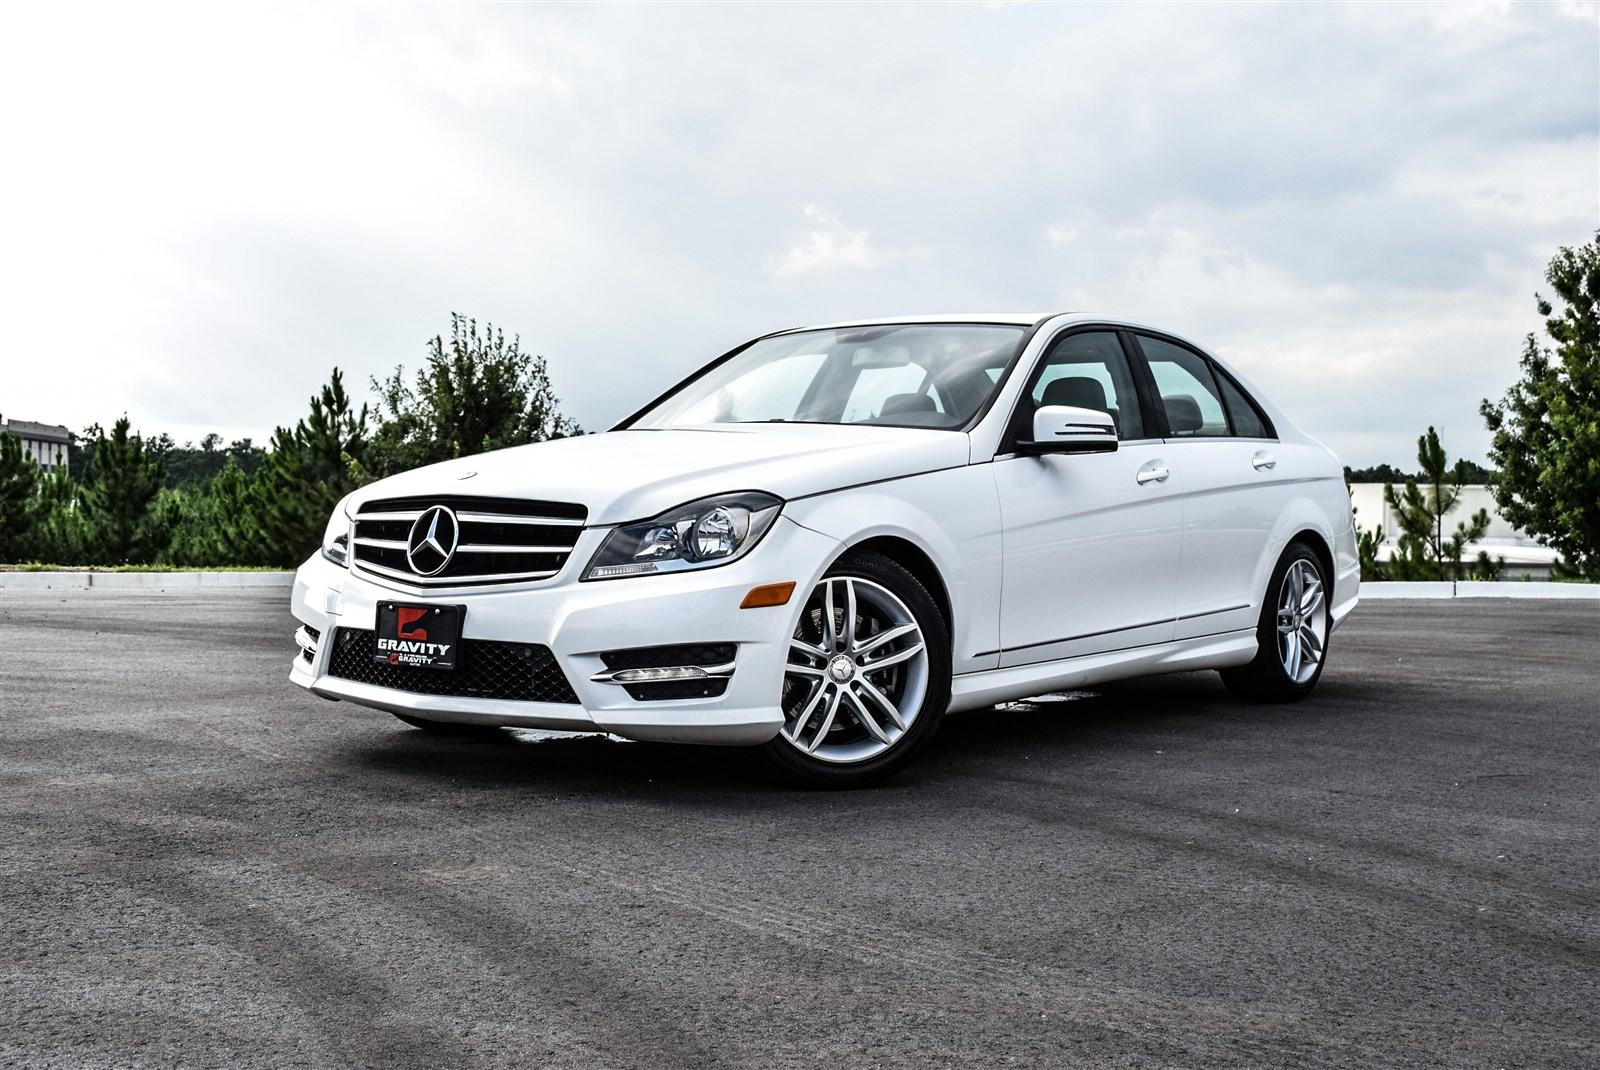 2014 mercedes benz c class c300 luxury stock 309445 for for Mercedes benz dealers in ga